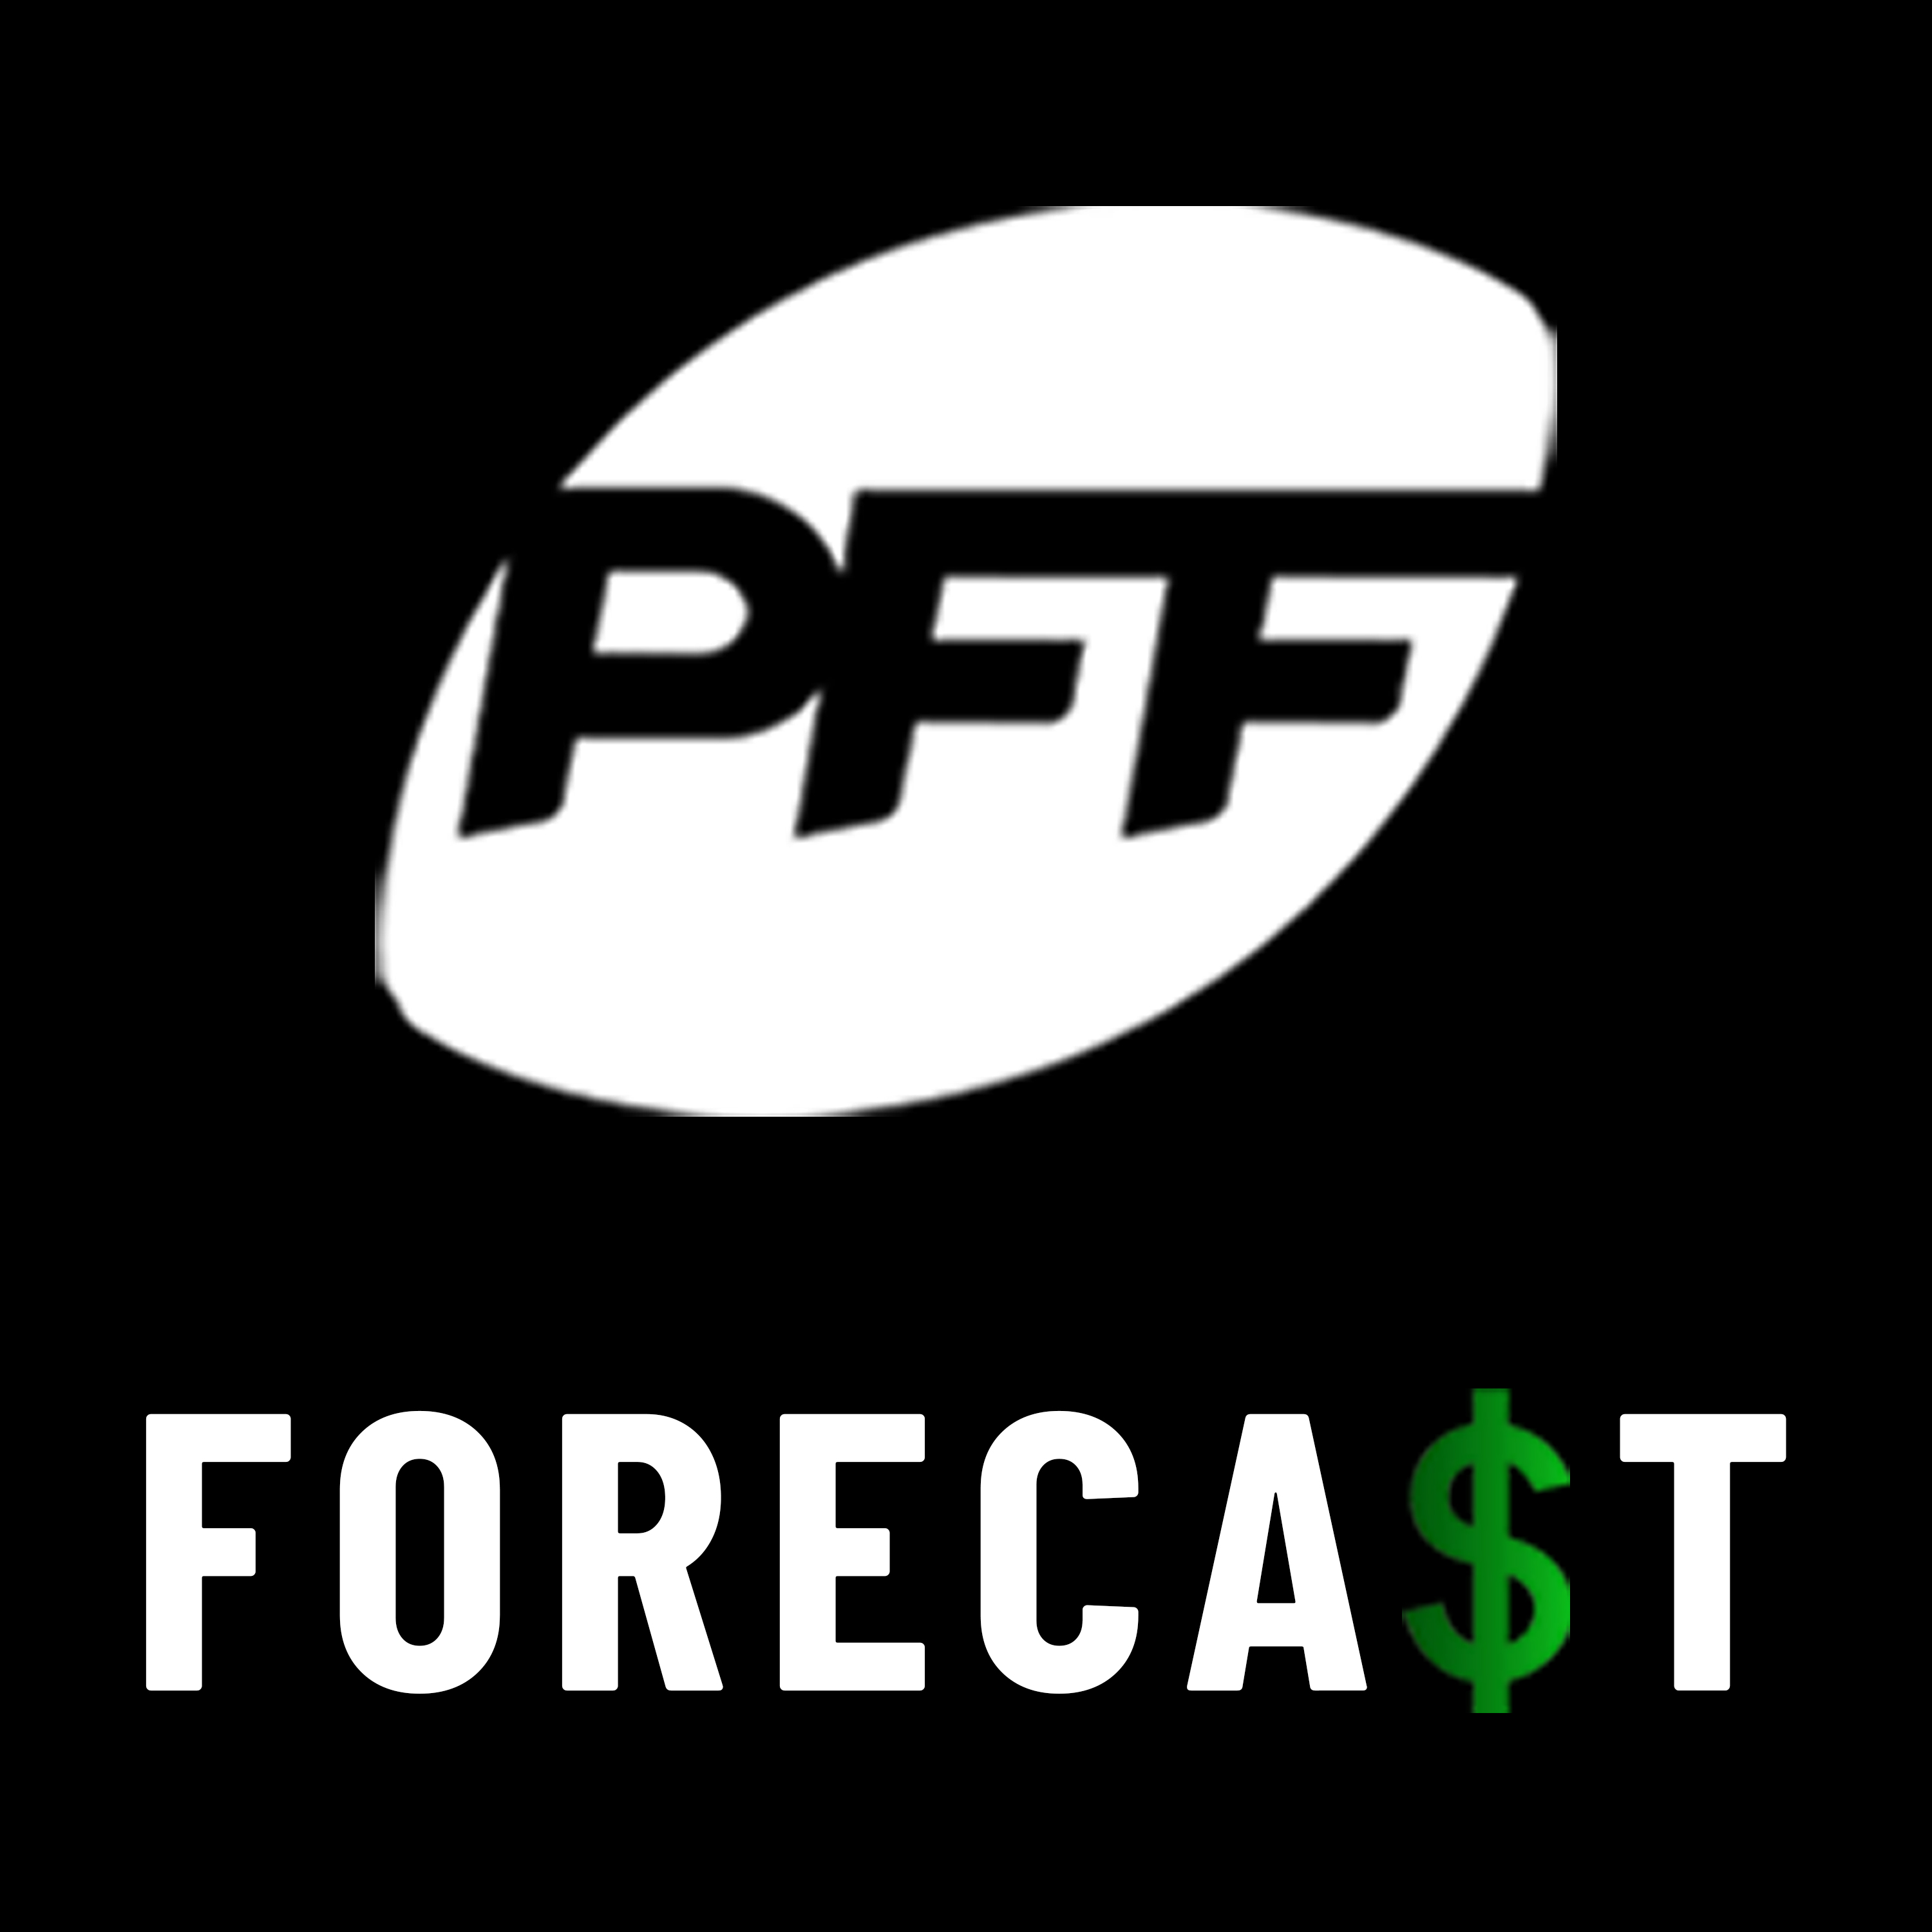 NFL Week 1 predictions + bets, injury fallout, Rookie QBs and Chase/Sewell debuts